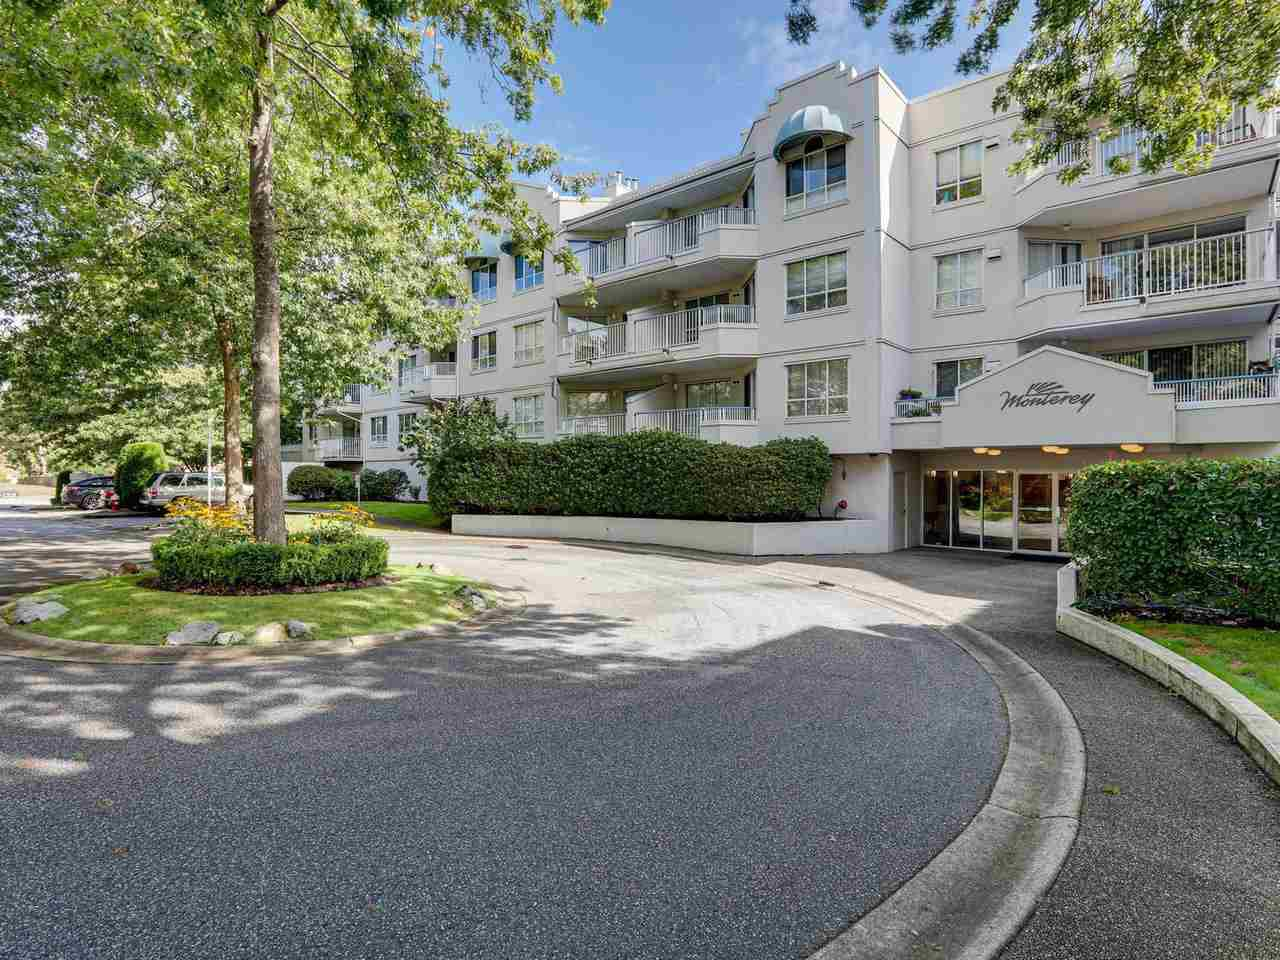 Main Photo: 119 8600 GENERAL CURRIE Road in Richmond: Brighouse South Condo for sale : MLS®# R2406917